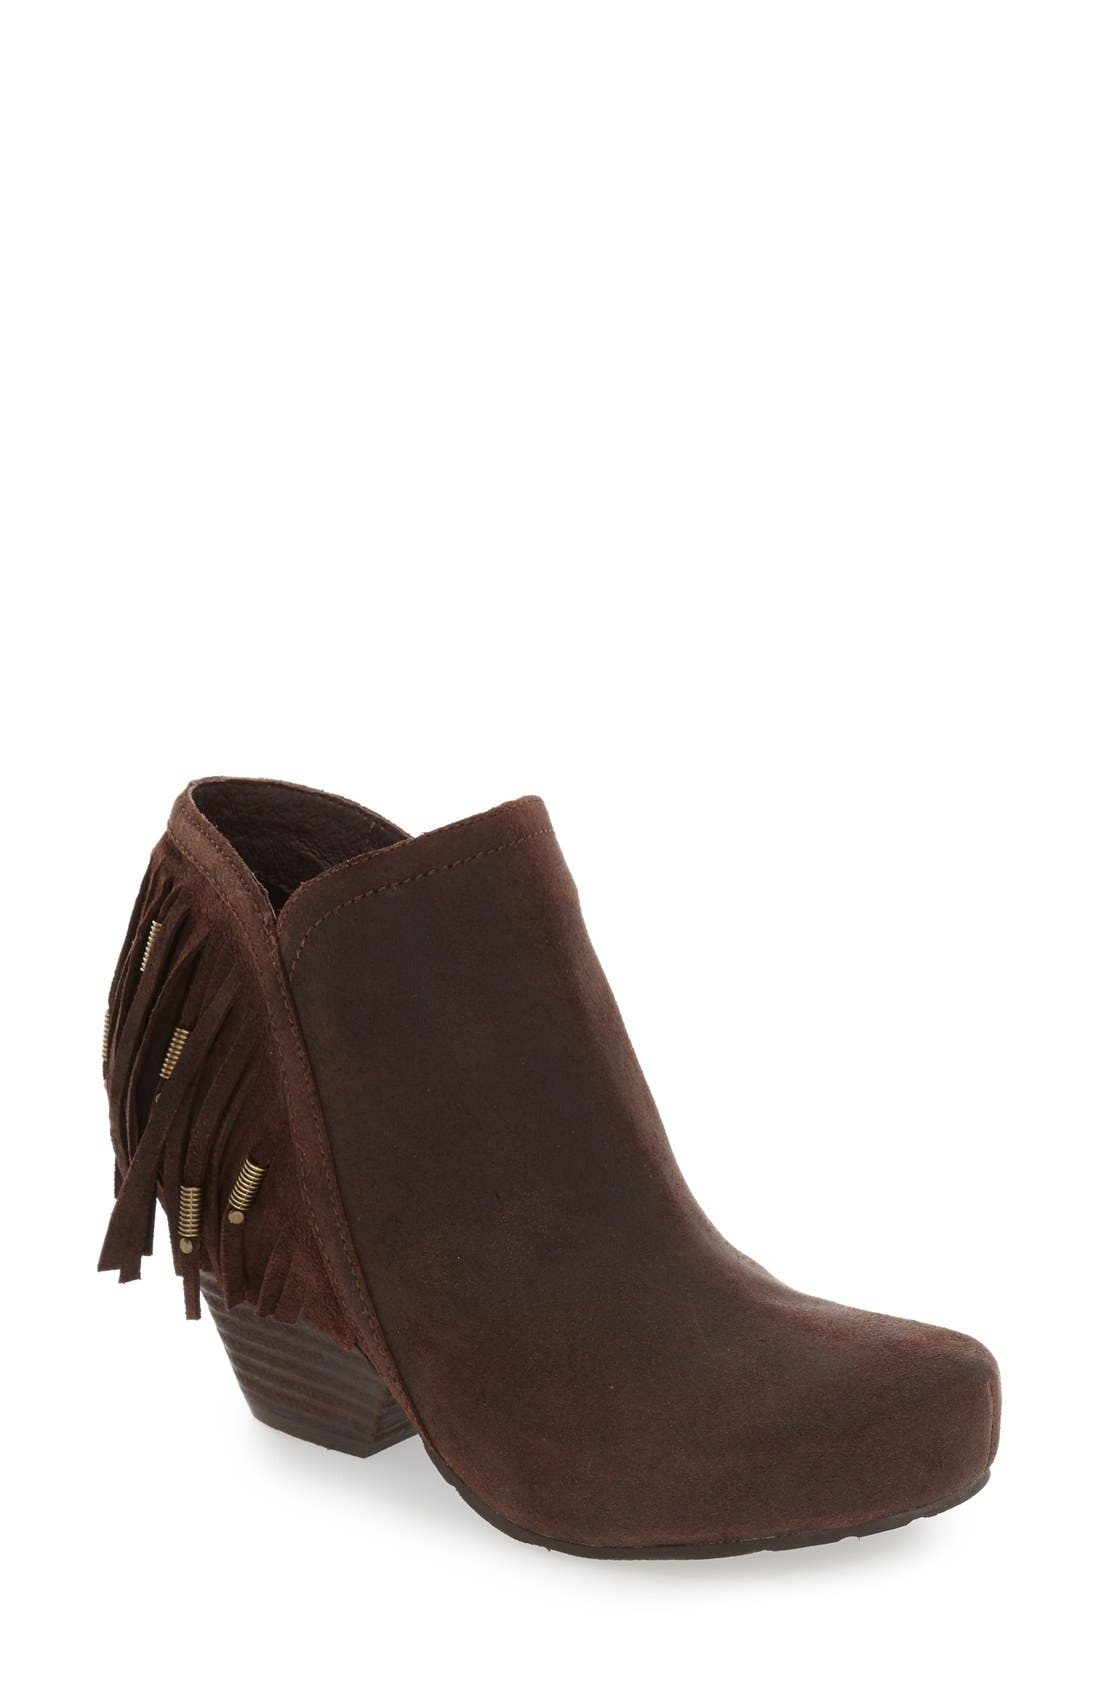 Main Image - OTBT Folkloric Bootie (Women)